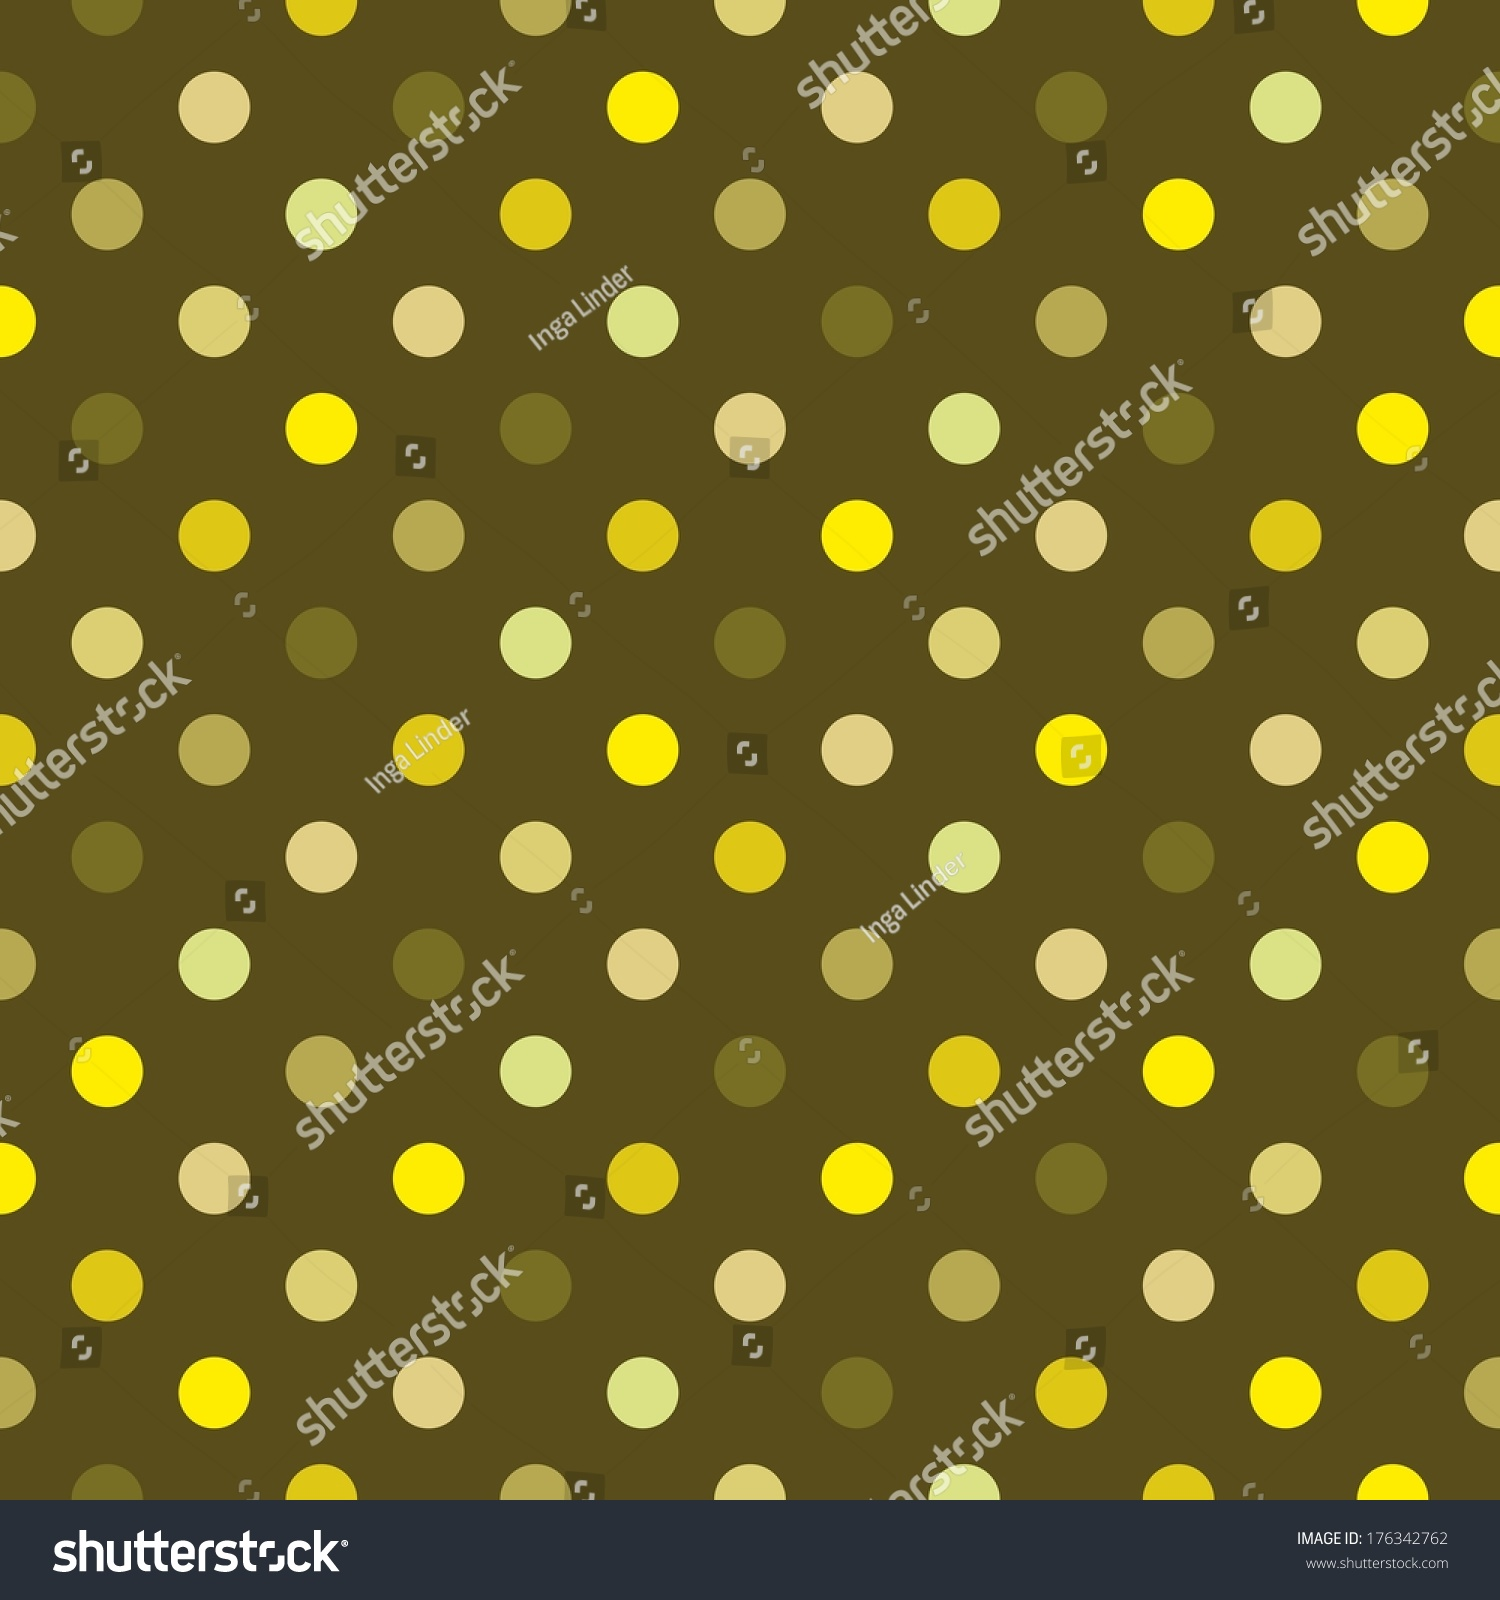 Dark Green Polka Dot Background